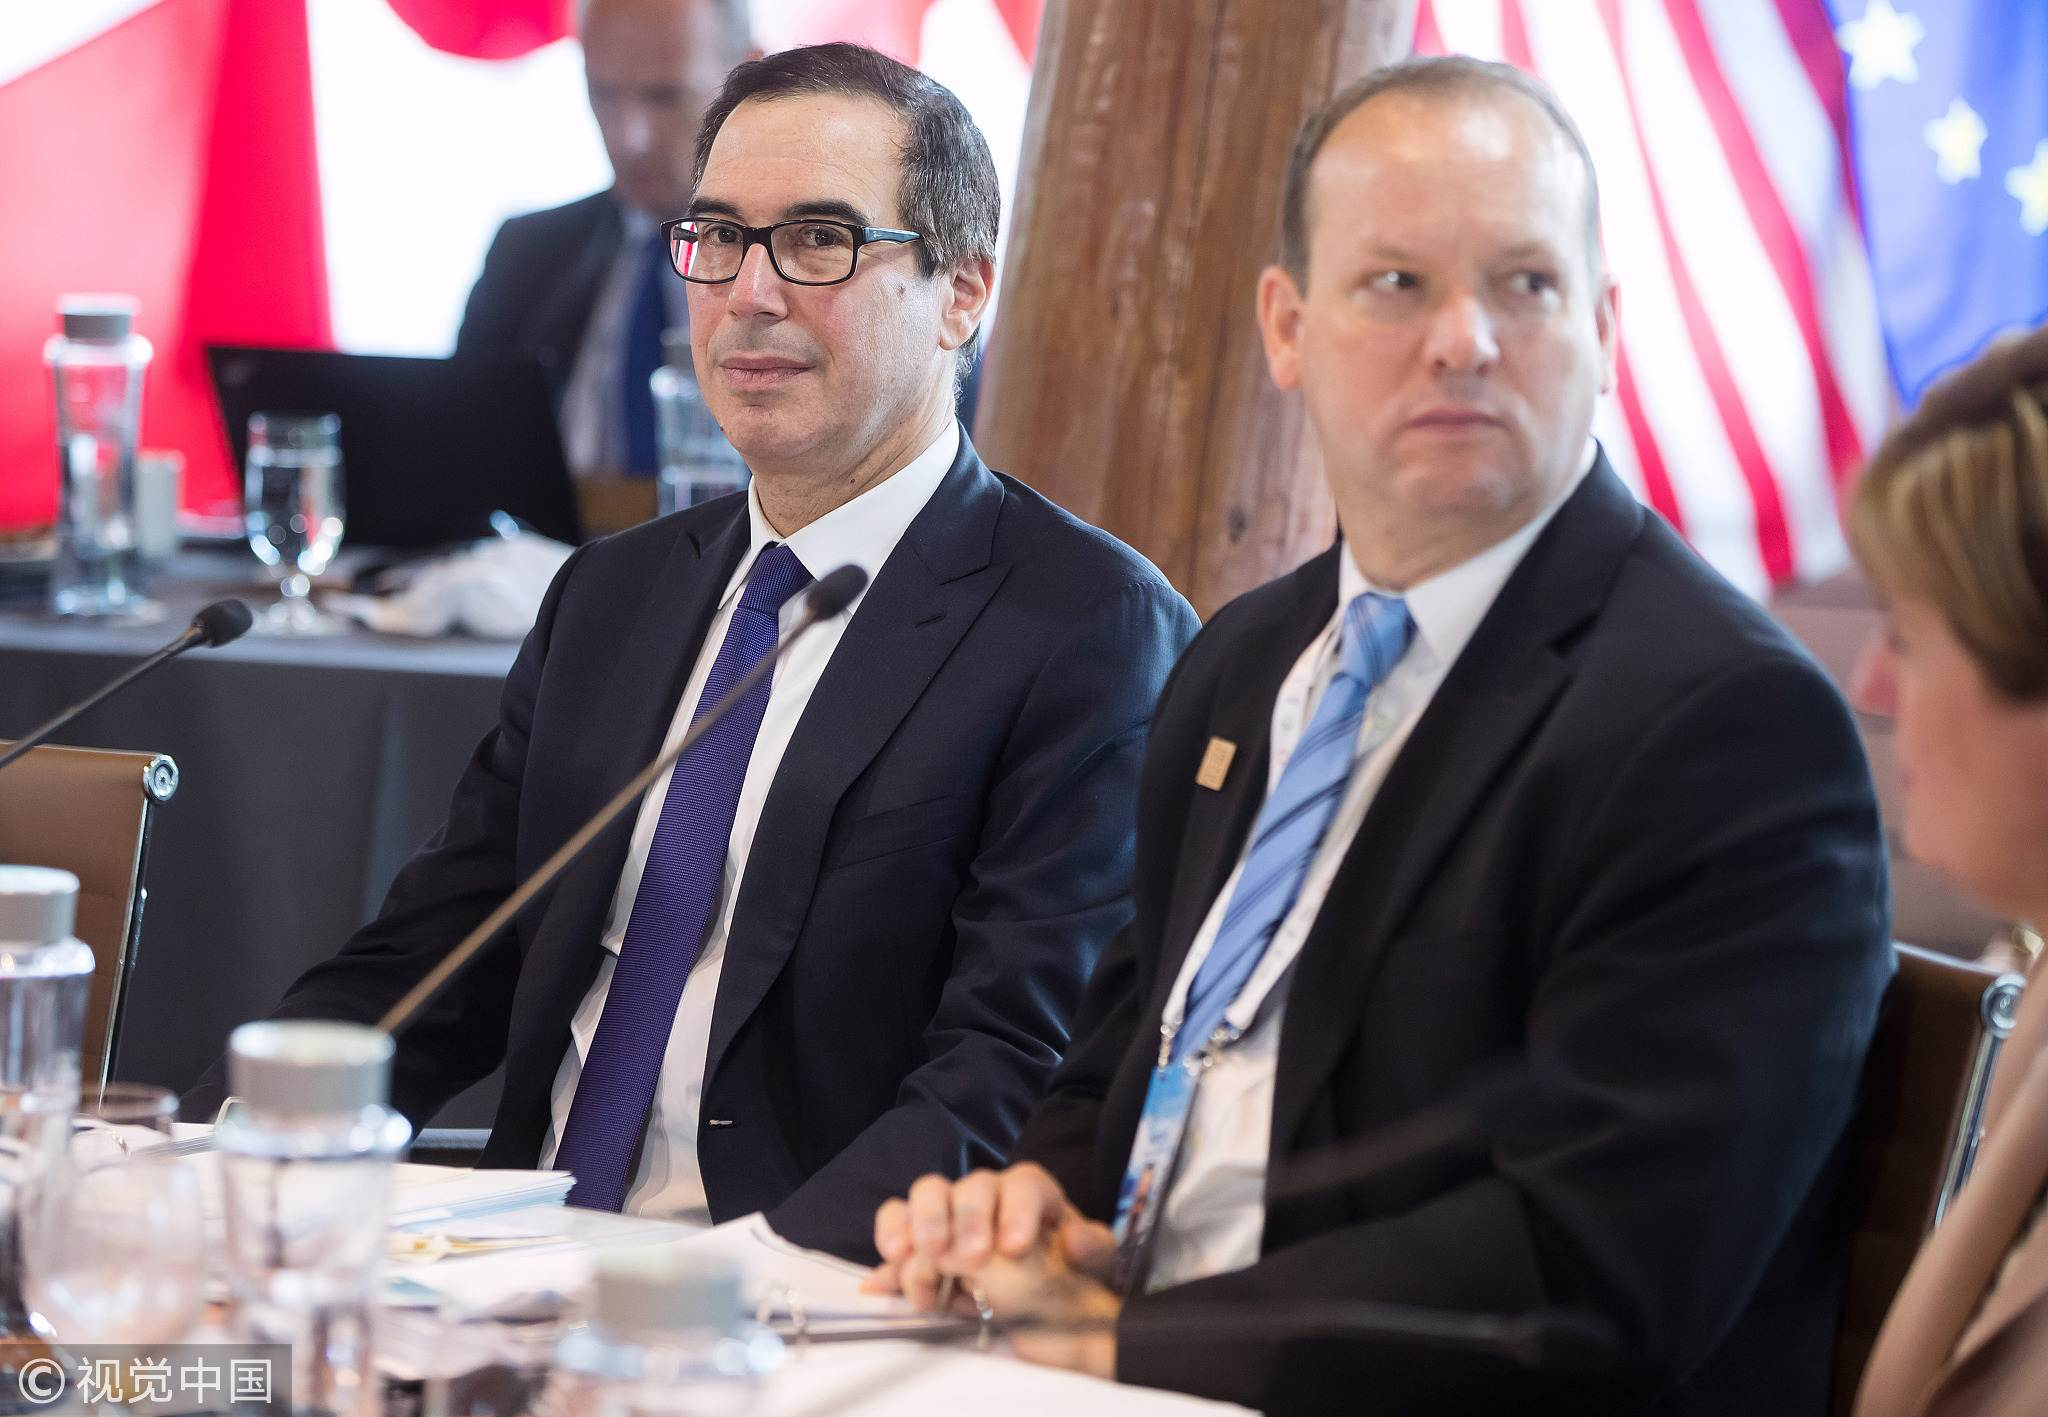 Steven Mnuchin, US Treasury secretary, left, and David Moore, acting deputy administrator of USAID, listen during the G7 finance ministers and central bank governors meeting in Whistler, British Columbia, Canada, on Friday, June 1, 2018. [Photo: VCG]